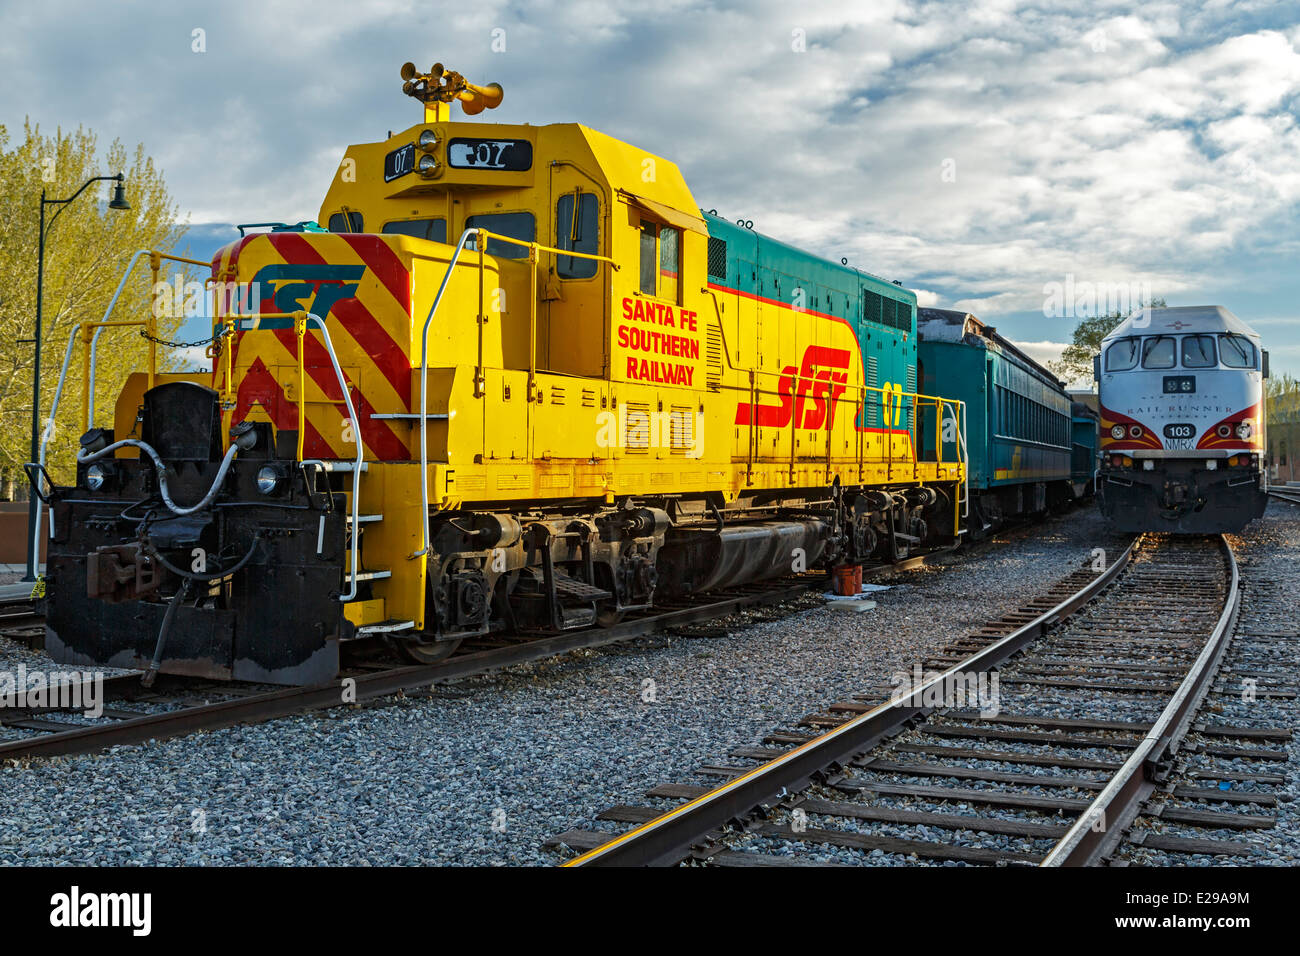 Santa Fe Southern Railway engine and Railrunner Express commuter train, Santa Fe Railyard, Santa Fe, New Mexico - Stock Image